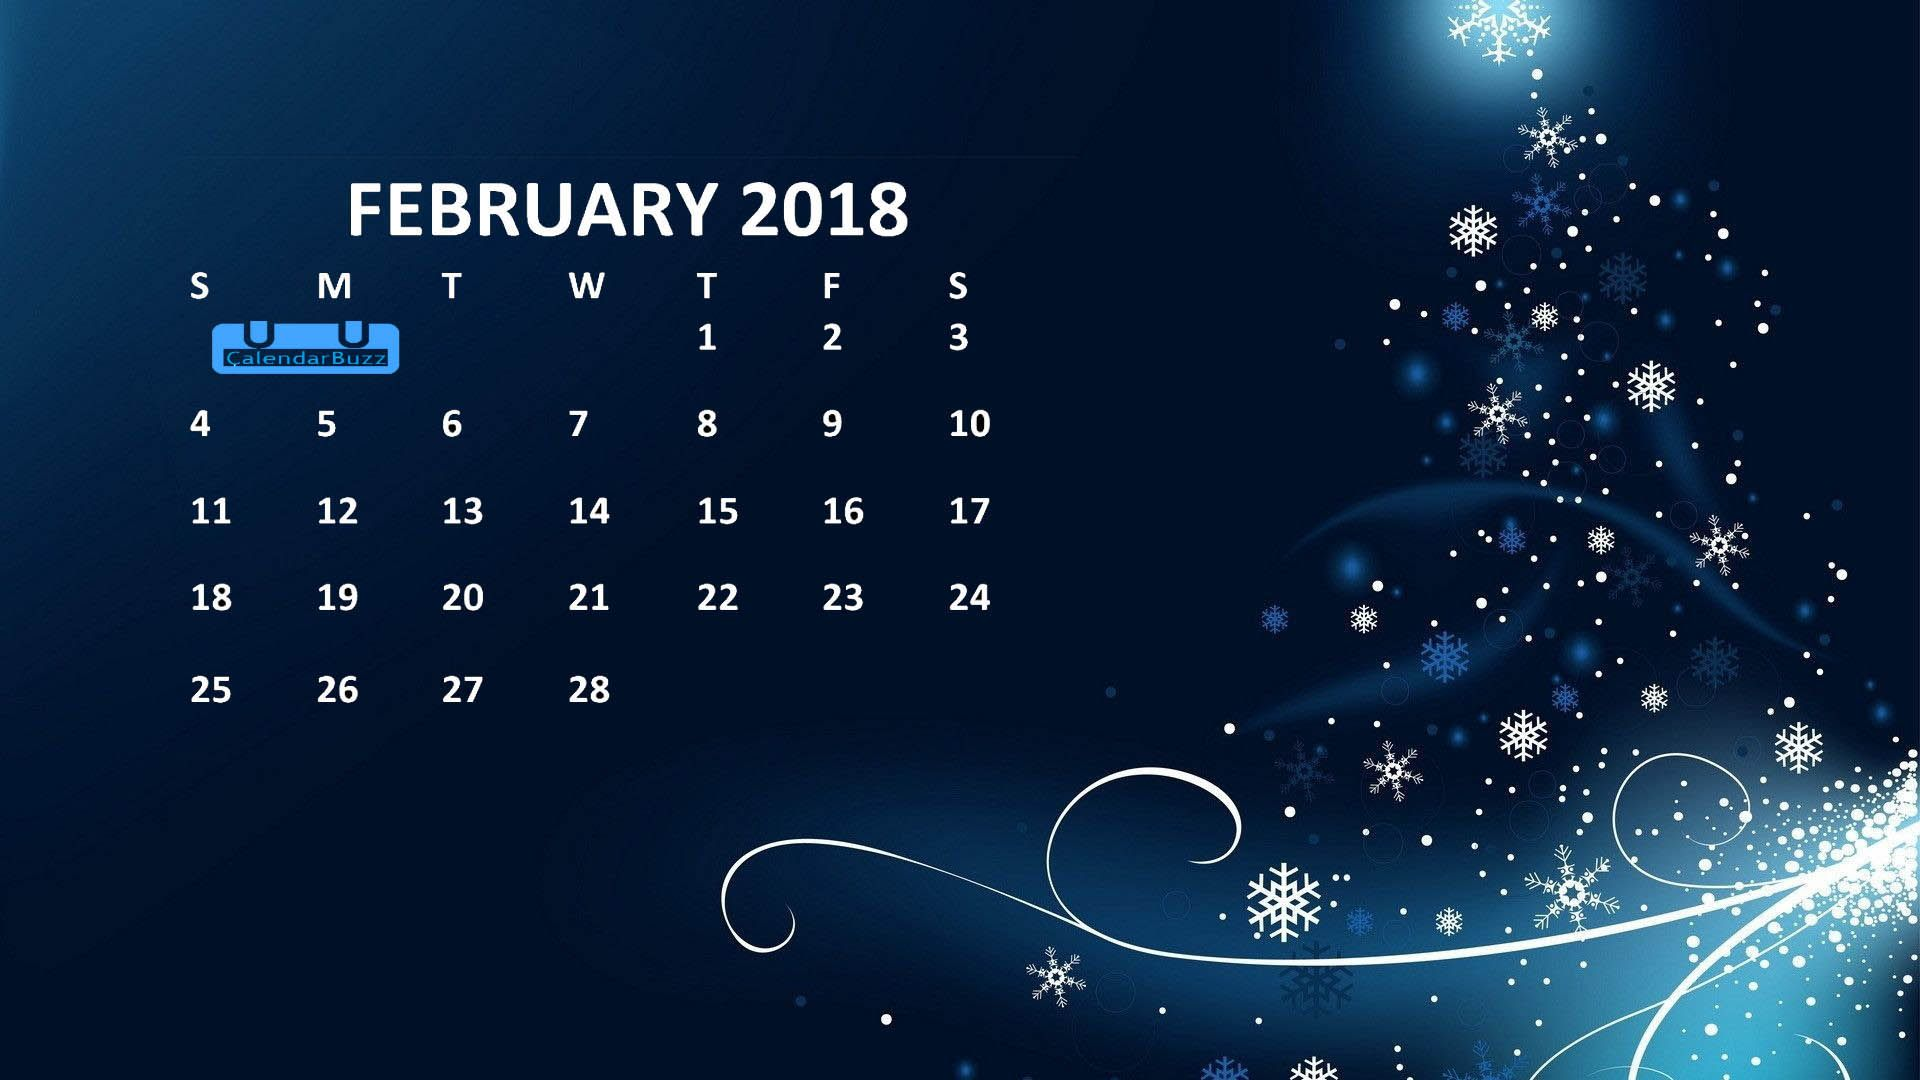 February Calendar Wallpaper Phone : February calendar hd wallpaper